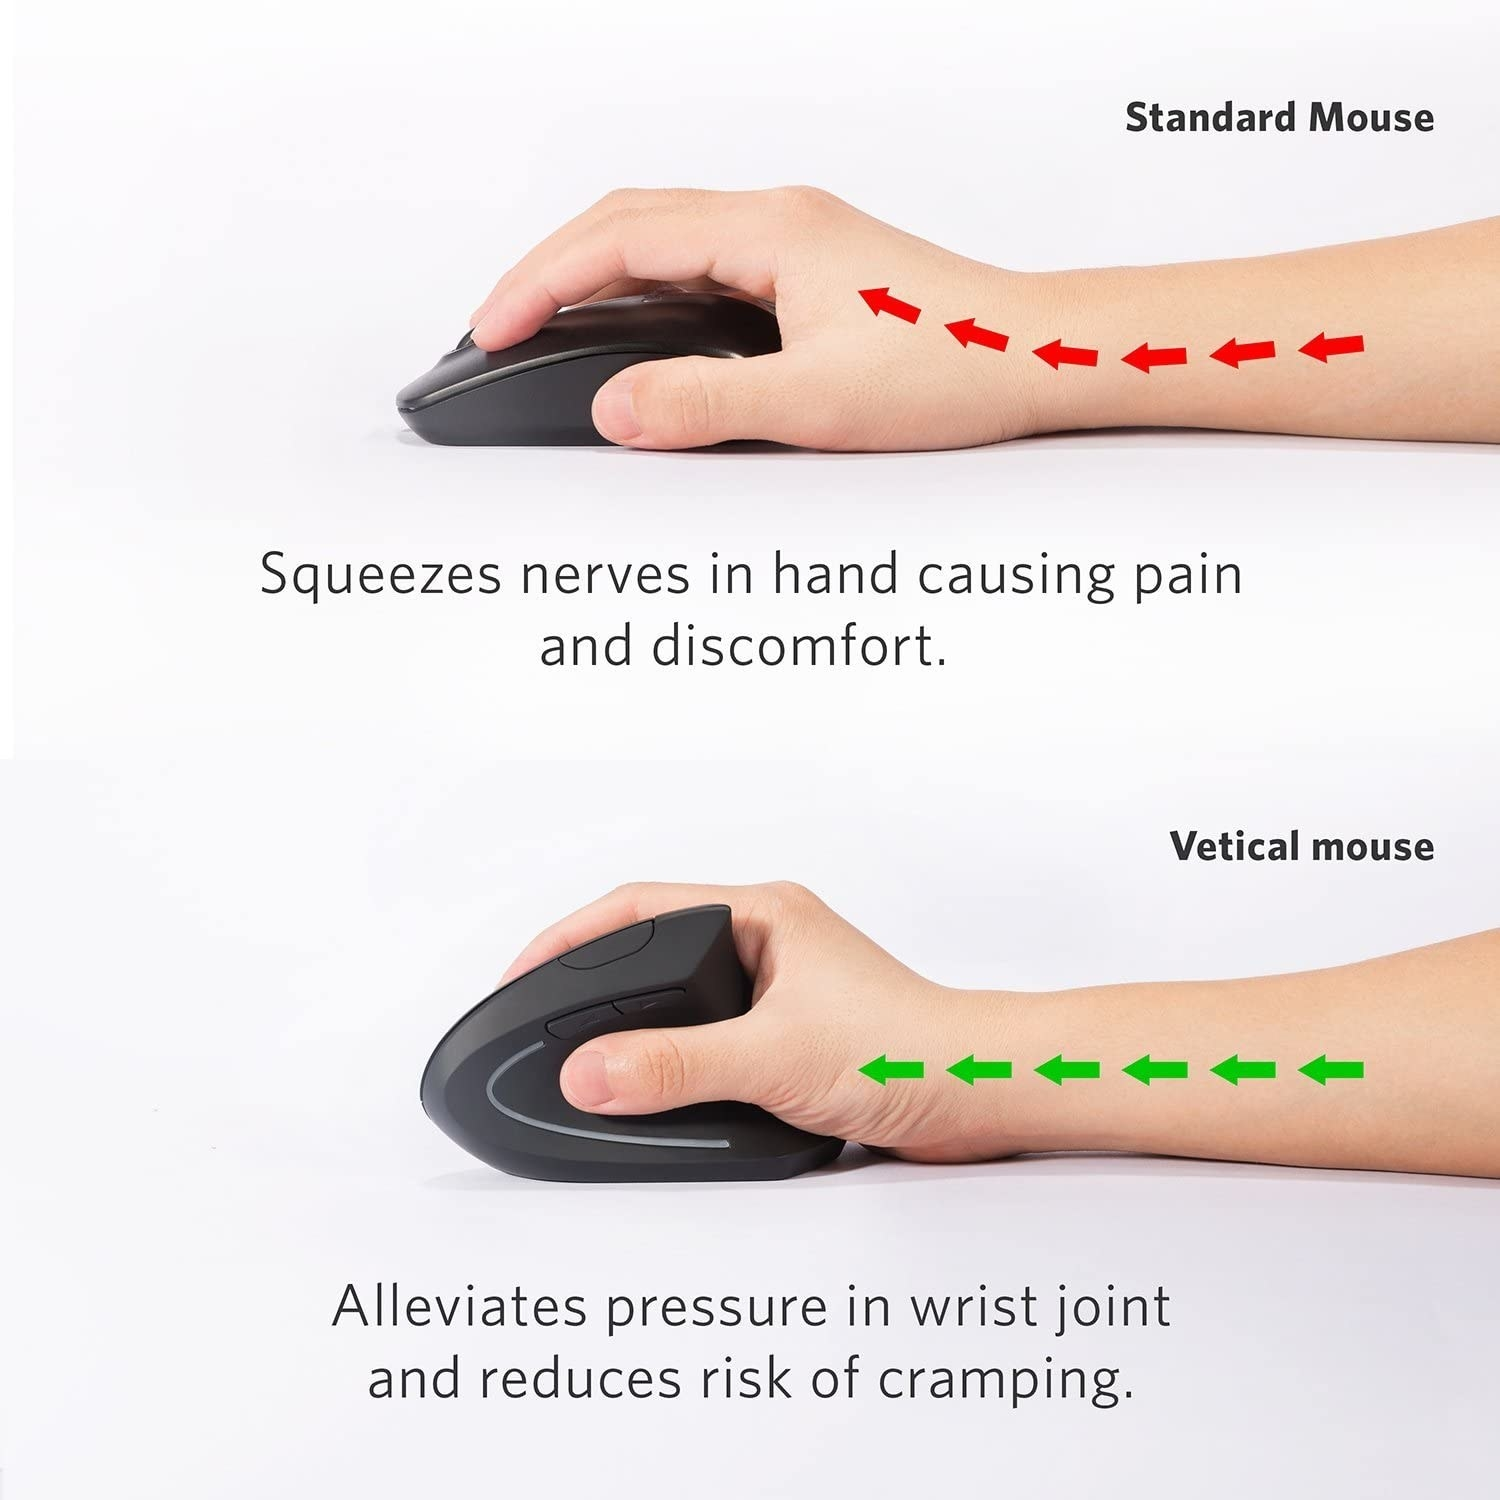 Infographic showing that the vertical mouse holds the wrist in a straighter position to alleviate pressure on the wrist joint